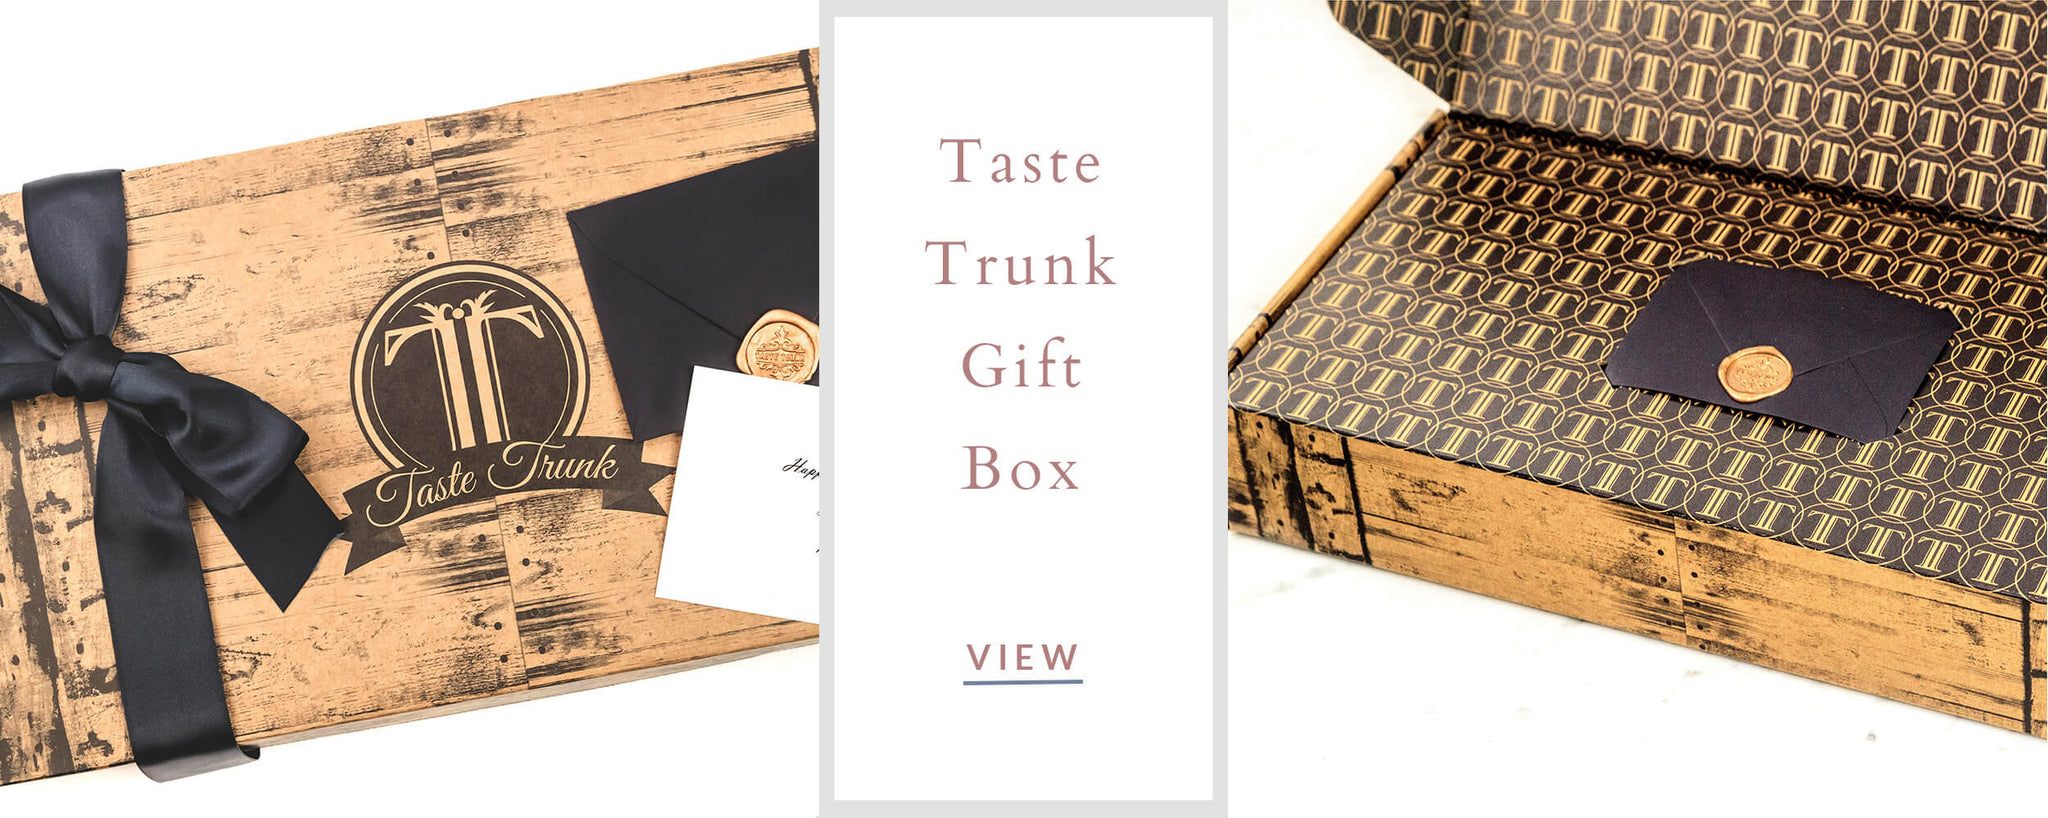 Corporate Custom Gifts - Taste Trunk Gift Box